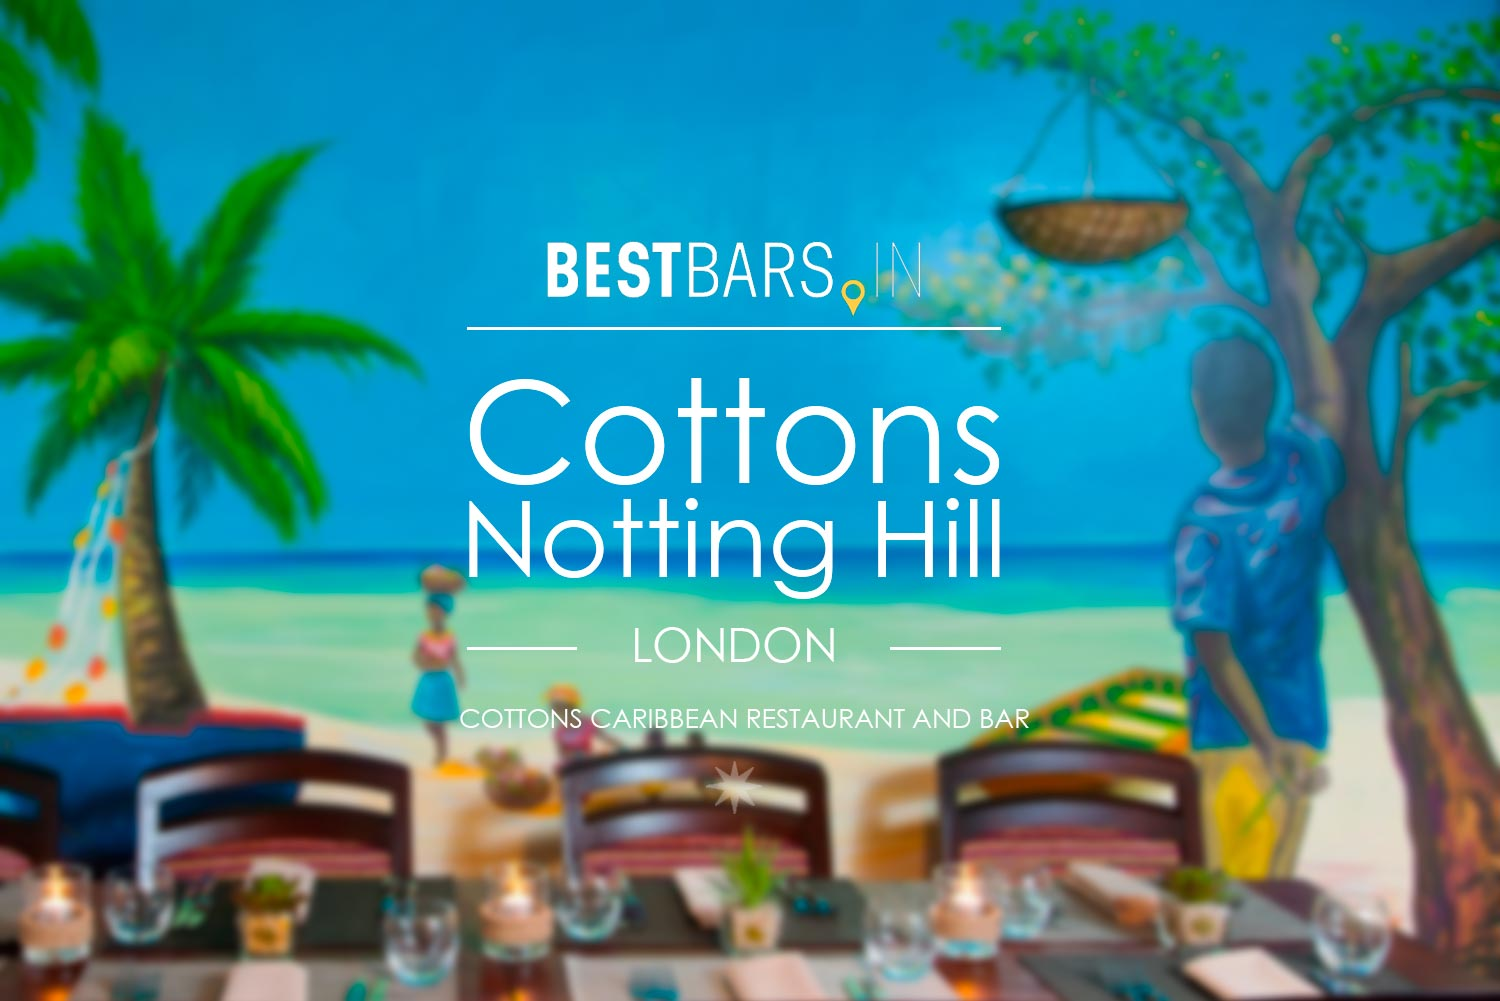 Cottons Notting Hill